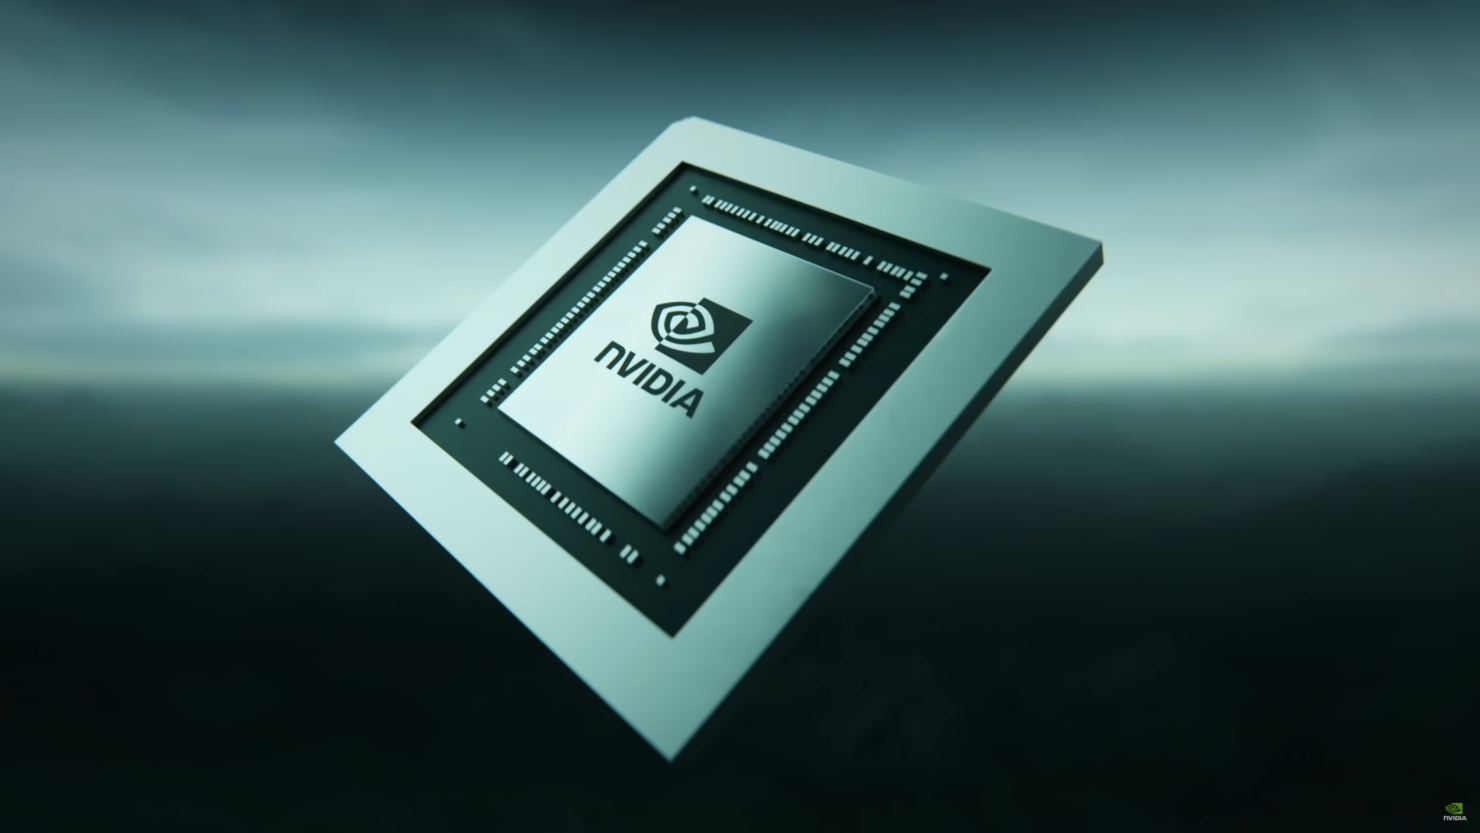 nvidia-geforce-rtx-30-laptop-gpus-to-get-super-refresh-in-early-2022,-alleges-rumor